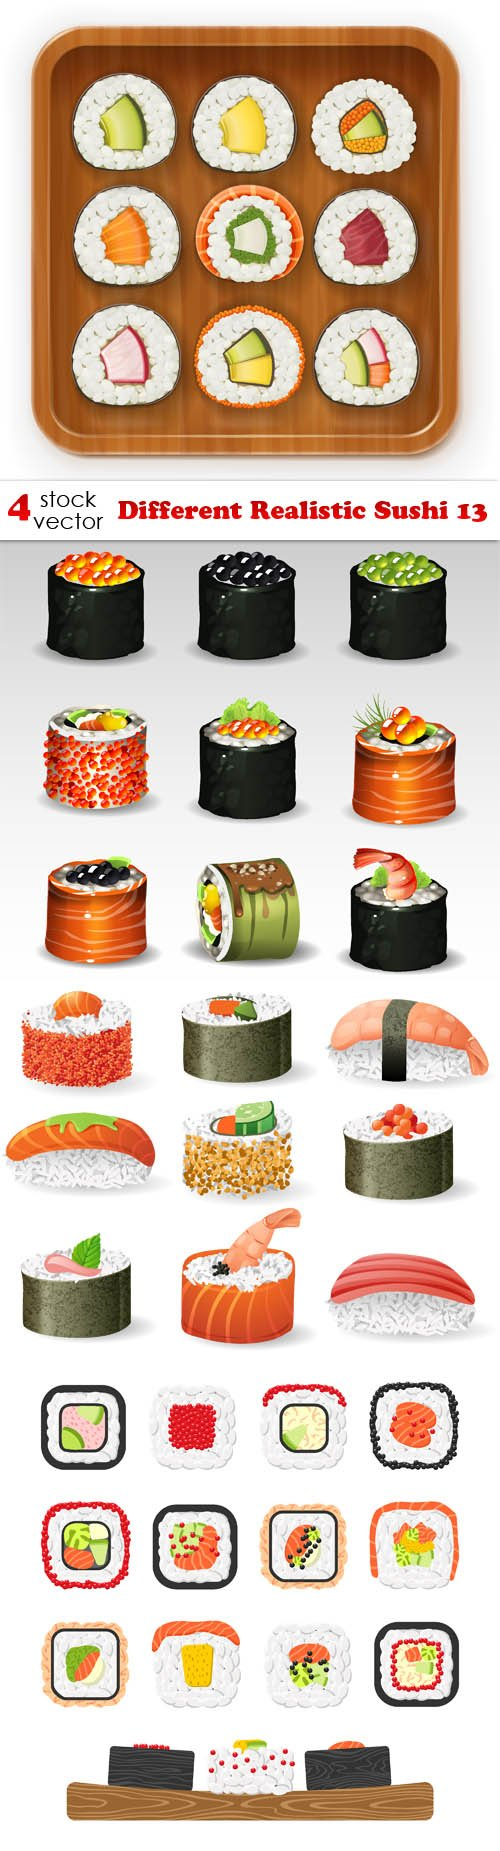 Vectors - Different Realistic Sushi 13